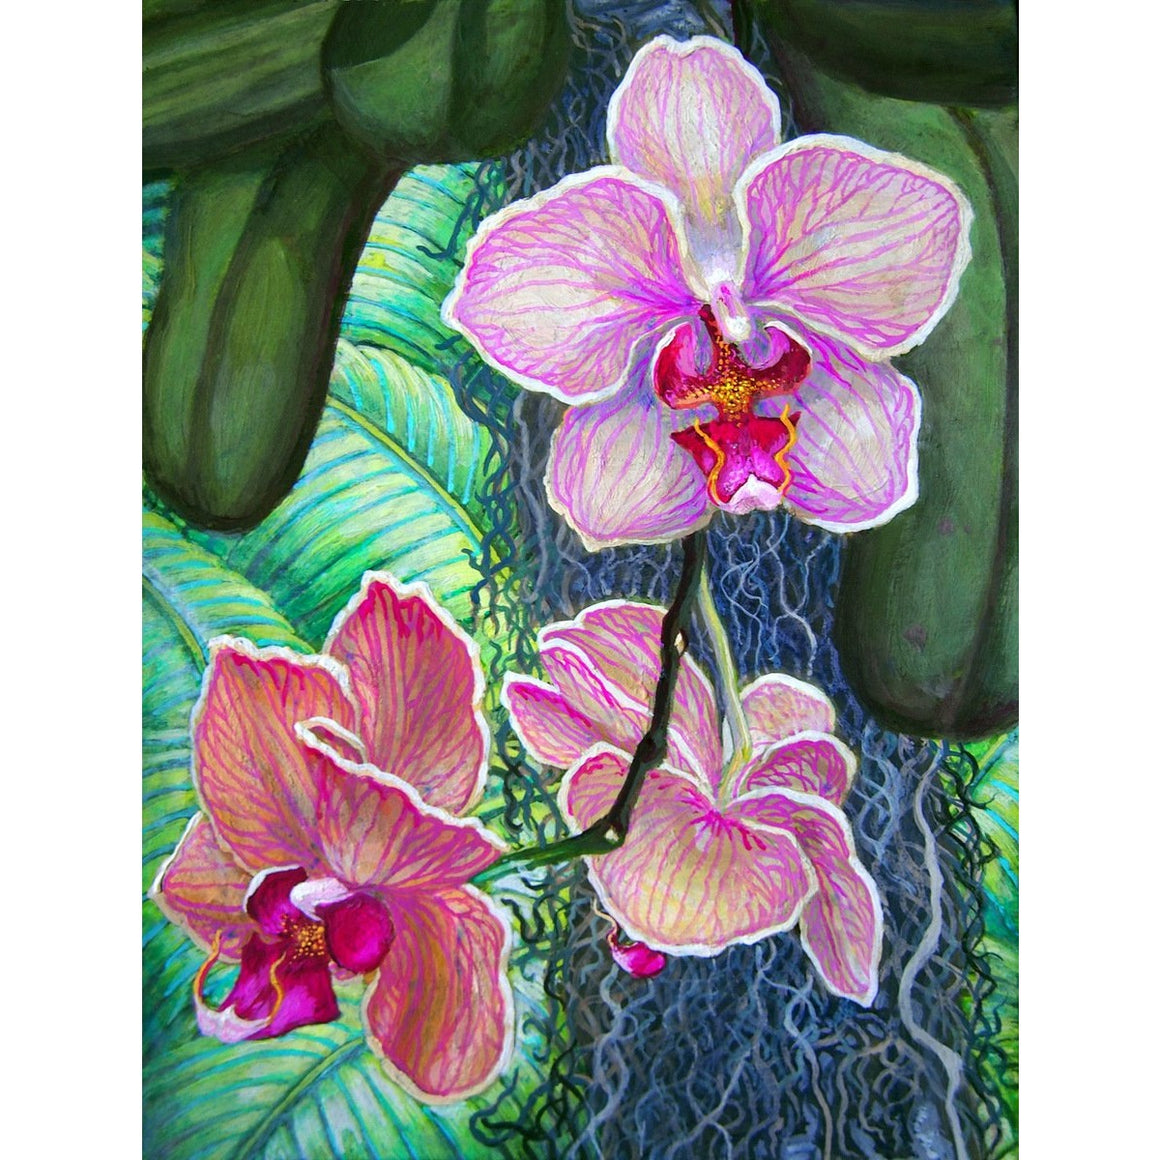 "'Pink Moth Orchid' Fine Art Painting Giclee Limited Edition Artist Proof 19"" x 23"" Framed"